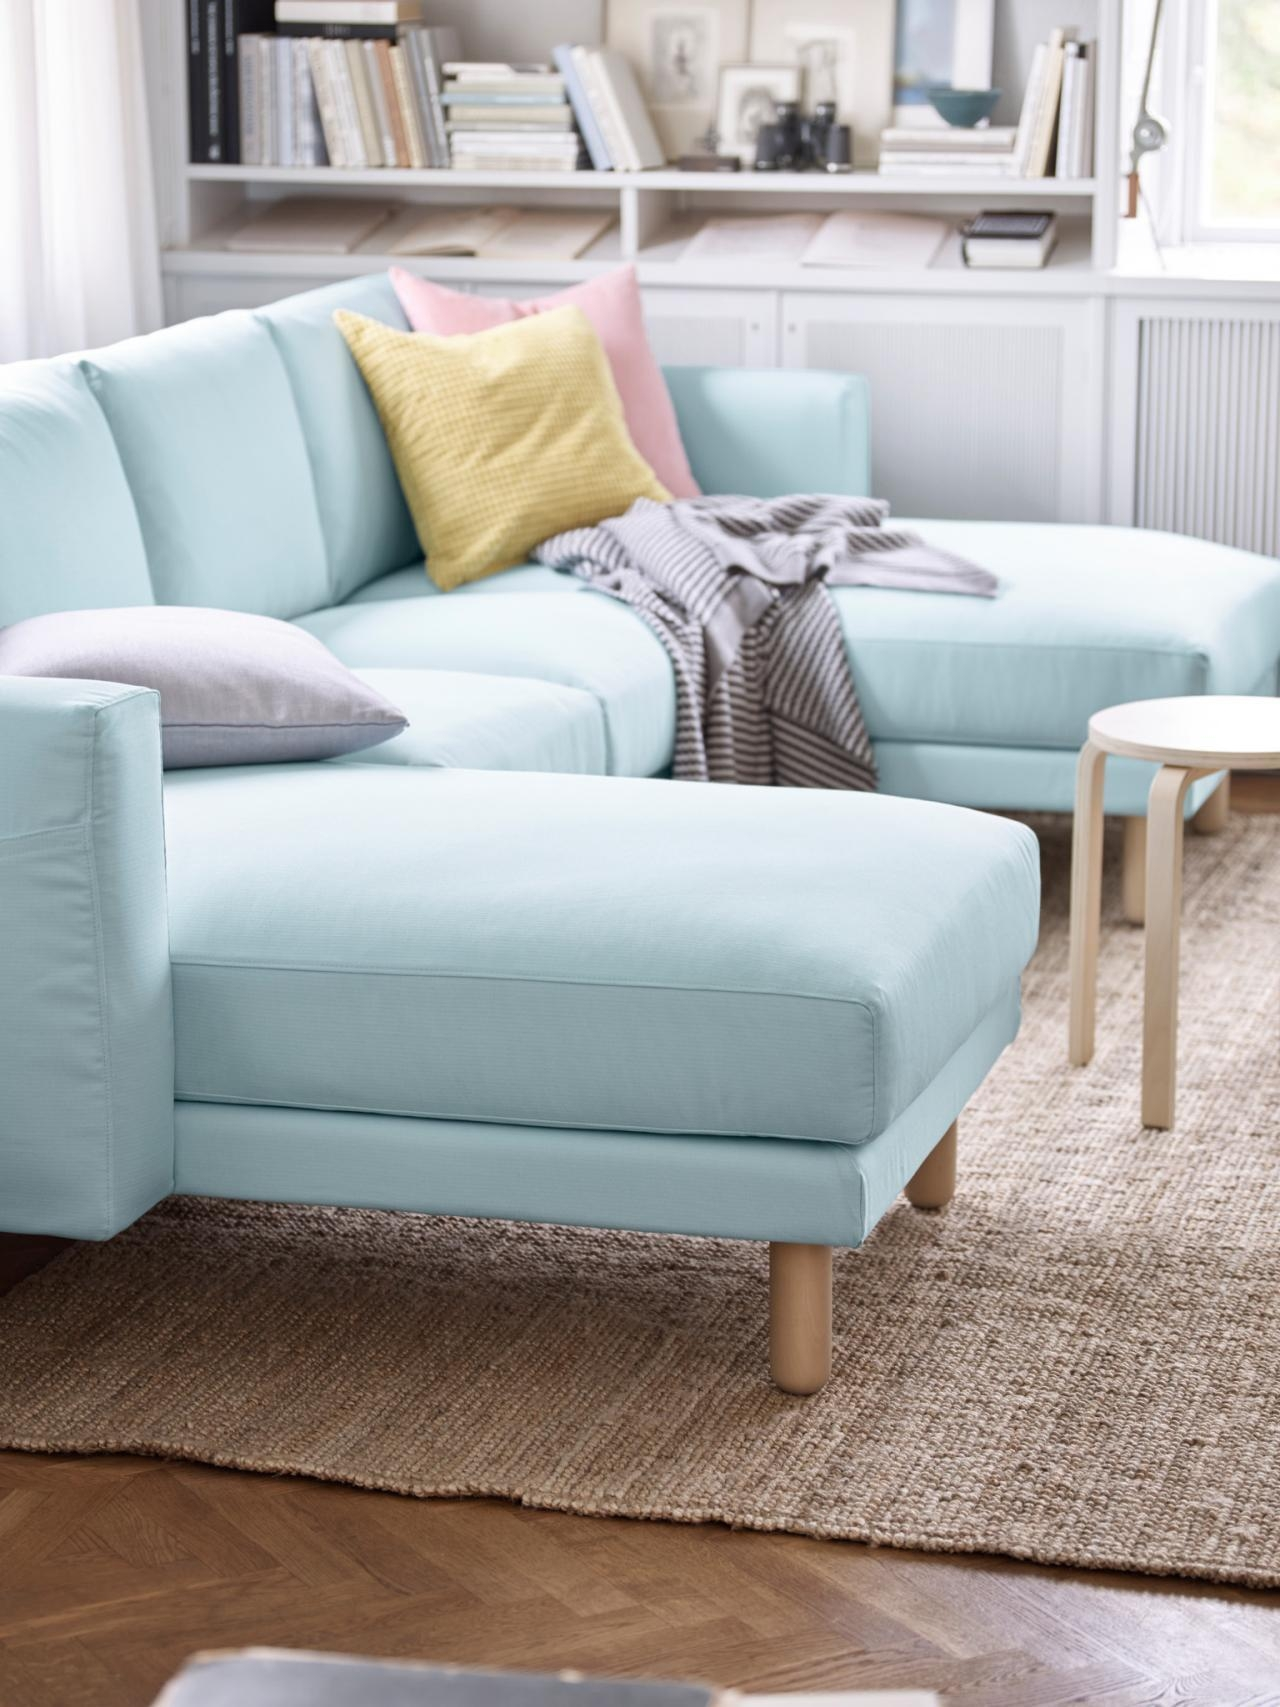 5 Apartment Sized Sofas That Are Lifesavers | Hgtv's Decorating within Inexpensive Sectional Sofas for Small Spaces